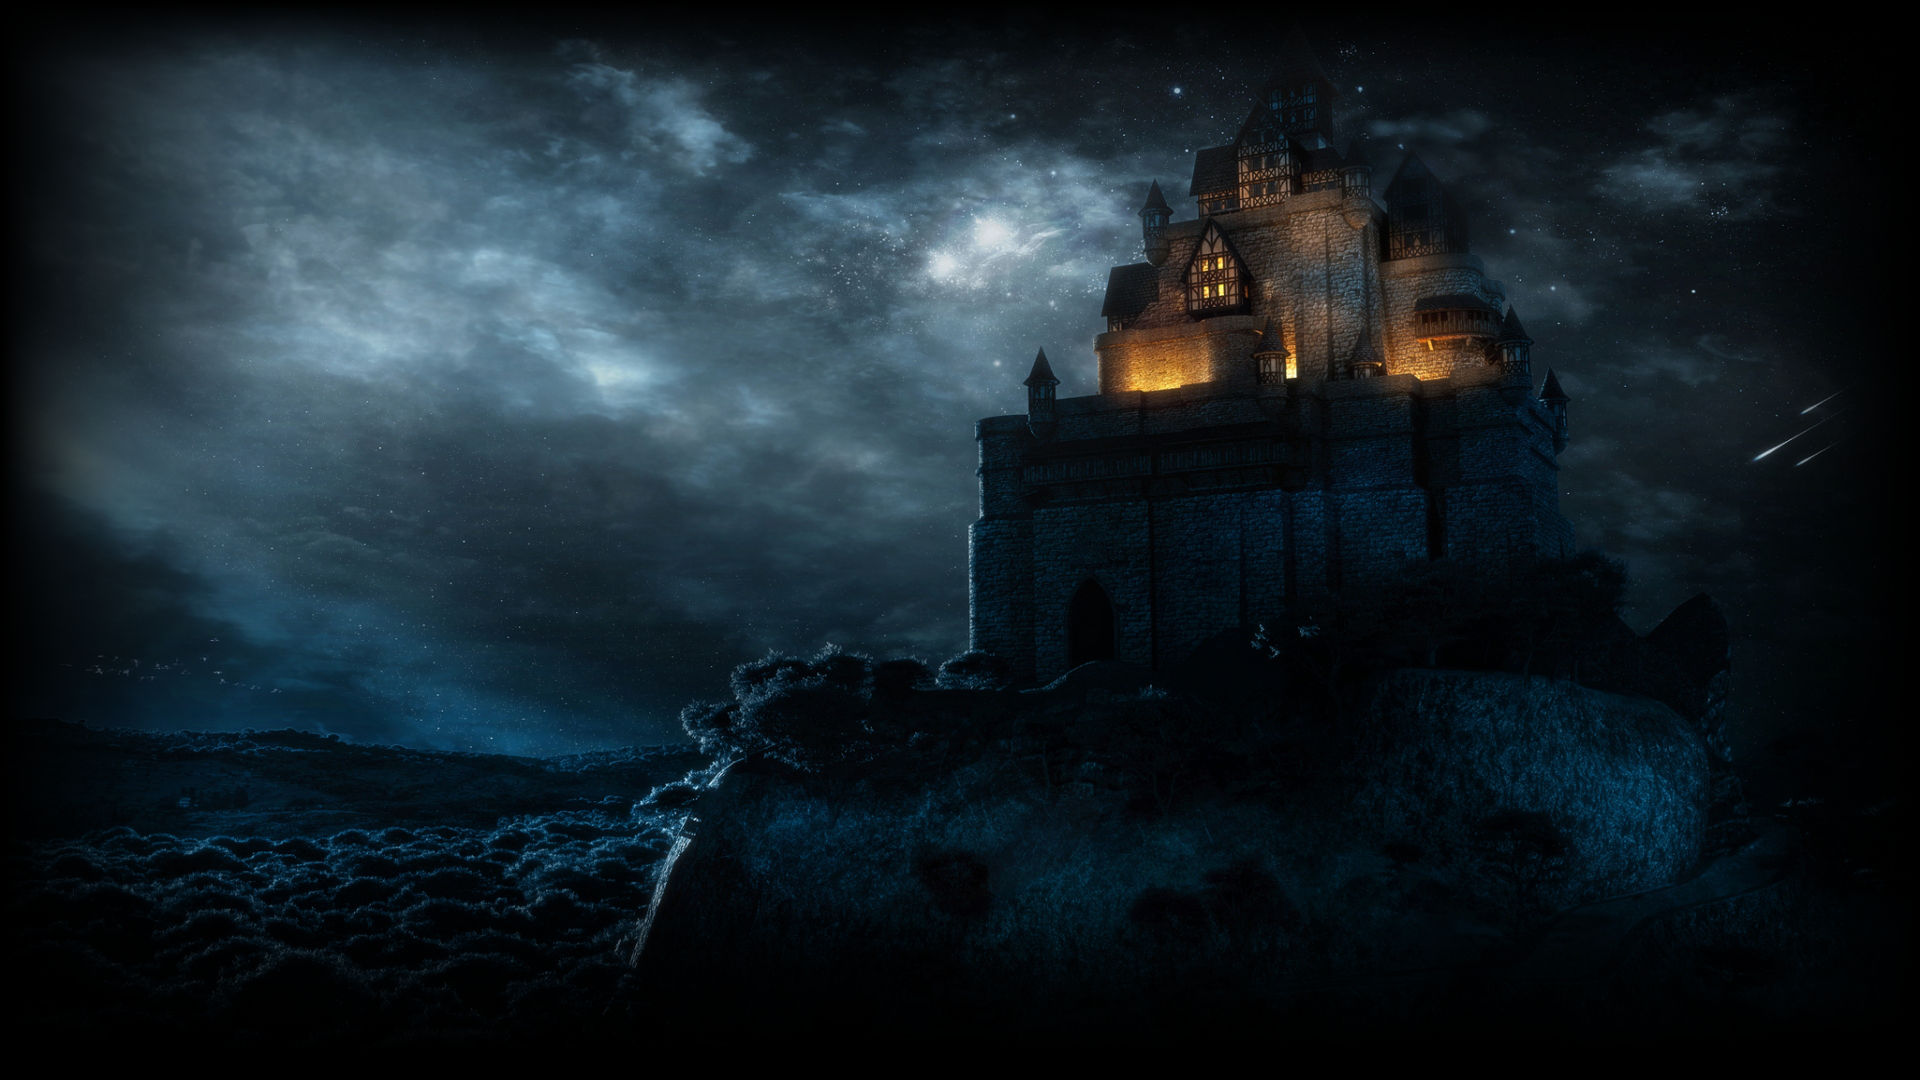 fantasy castles with dragons